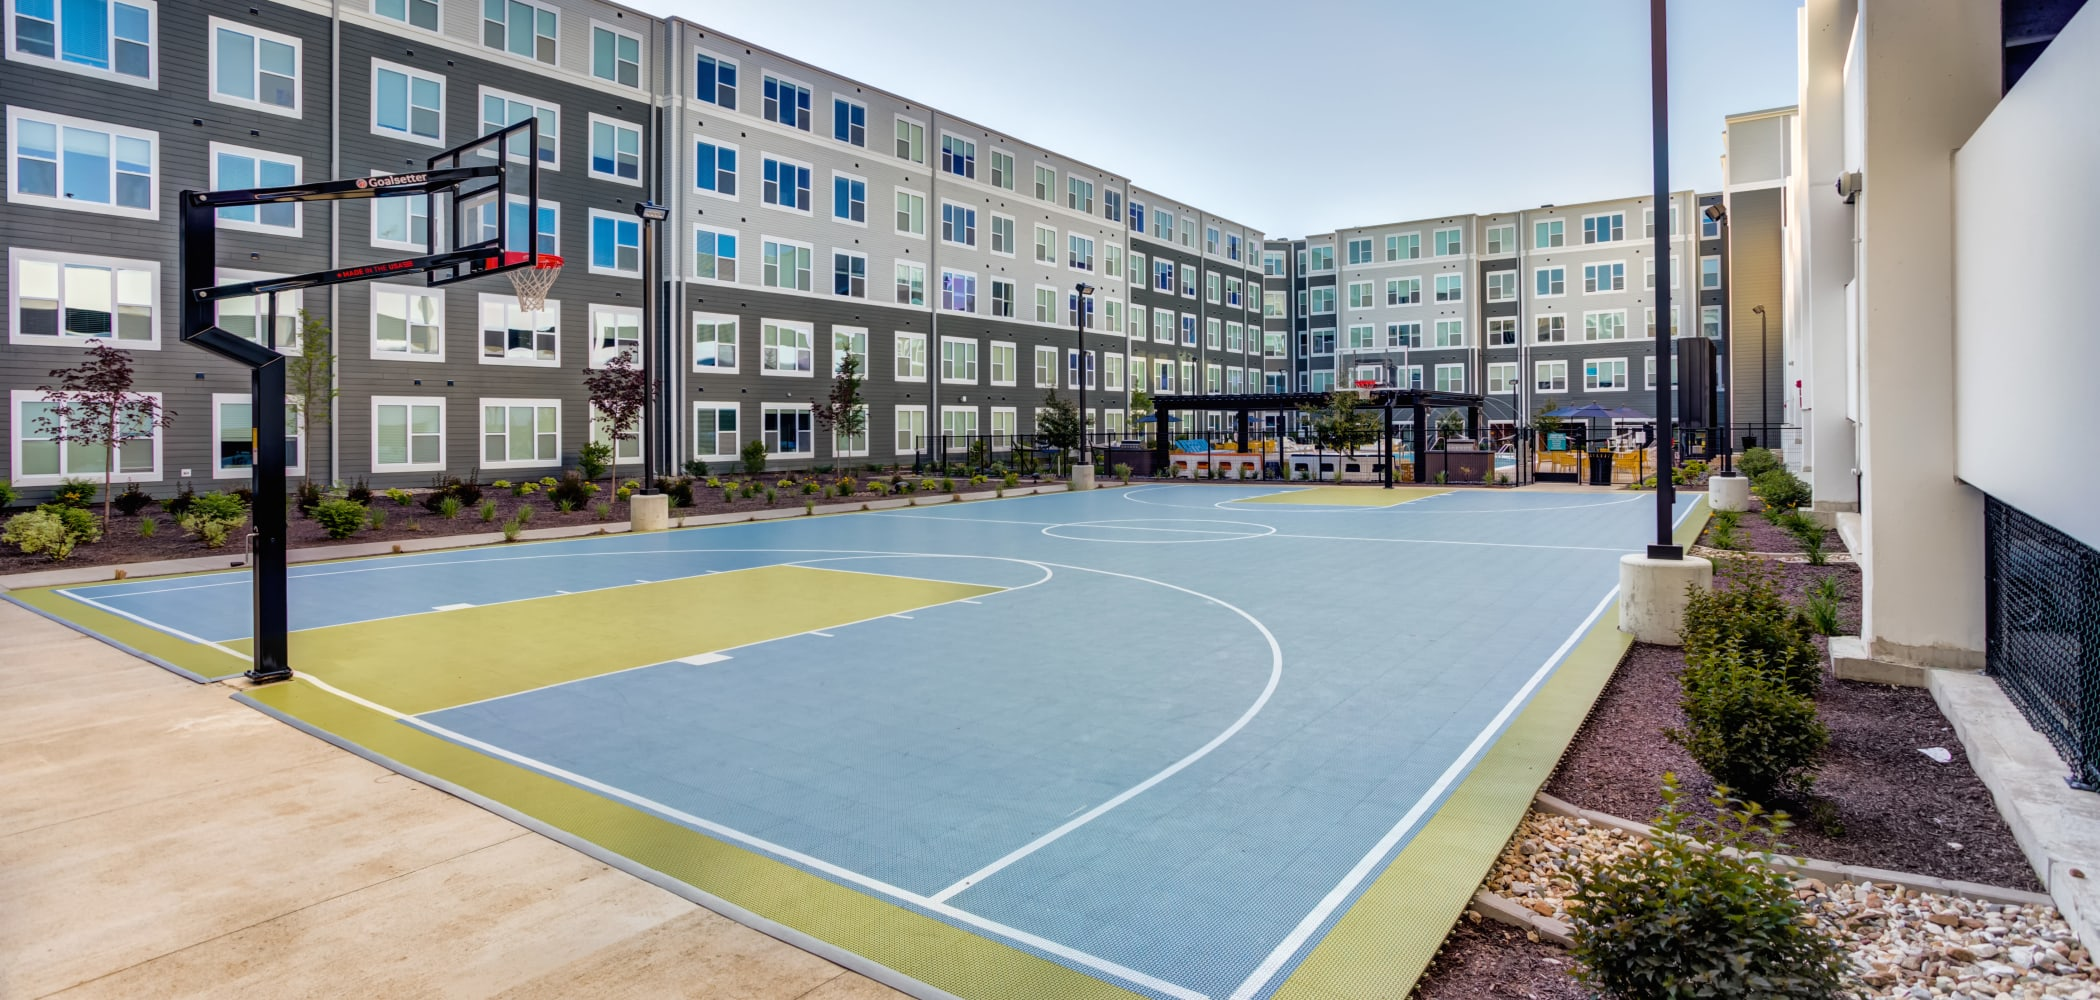 Our Apartments in Coralville, Iowa offer a Basketball Court